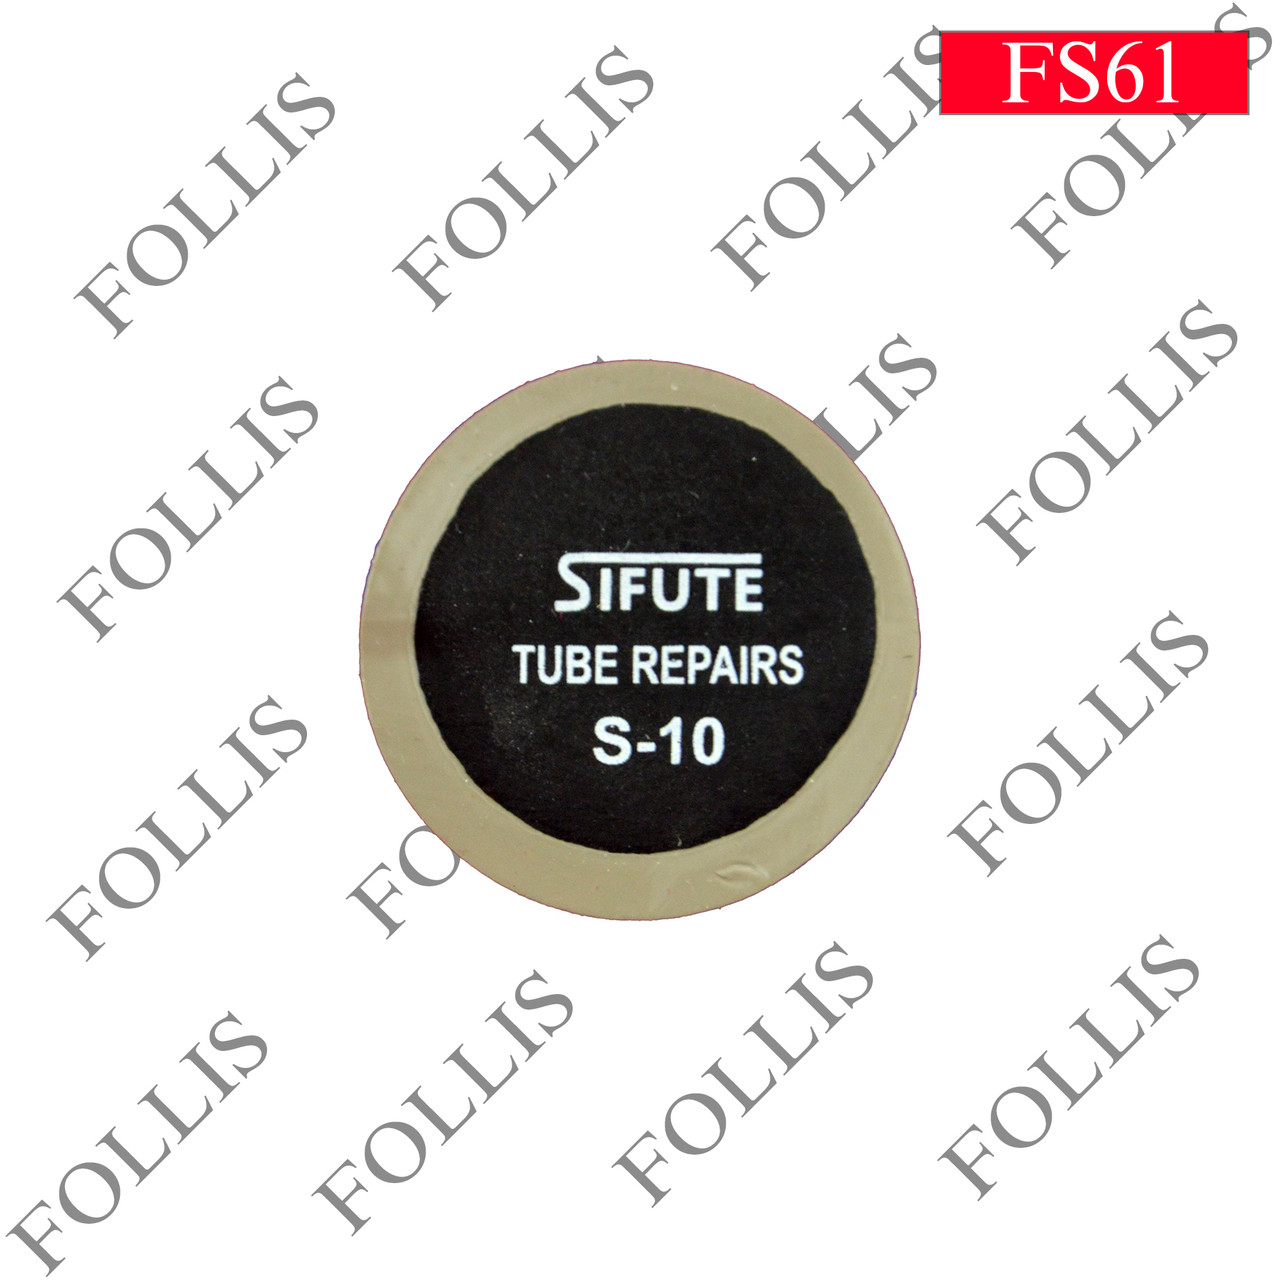 S-10 32mm (Пачка)Round shape,grey and black mixed